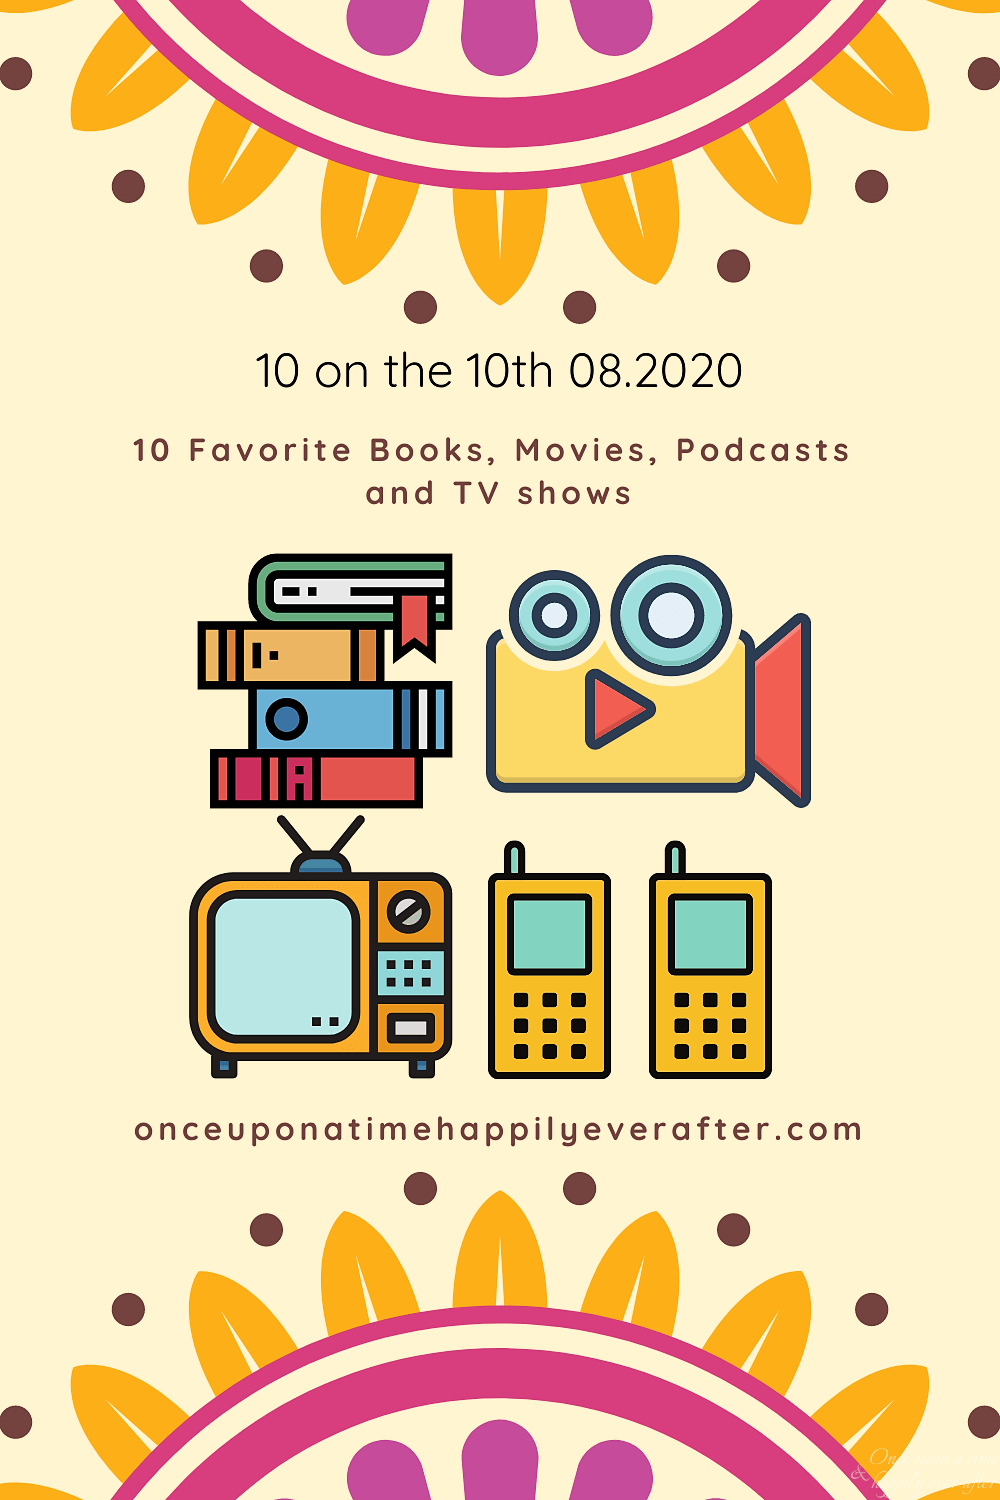 Favorite Books, Movies, Podcasts, TV Shows: Prompt for August's 10 on the 10th